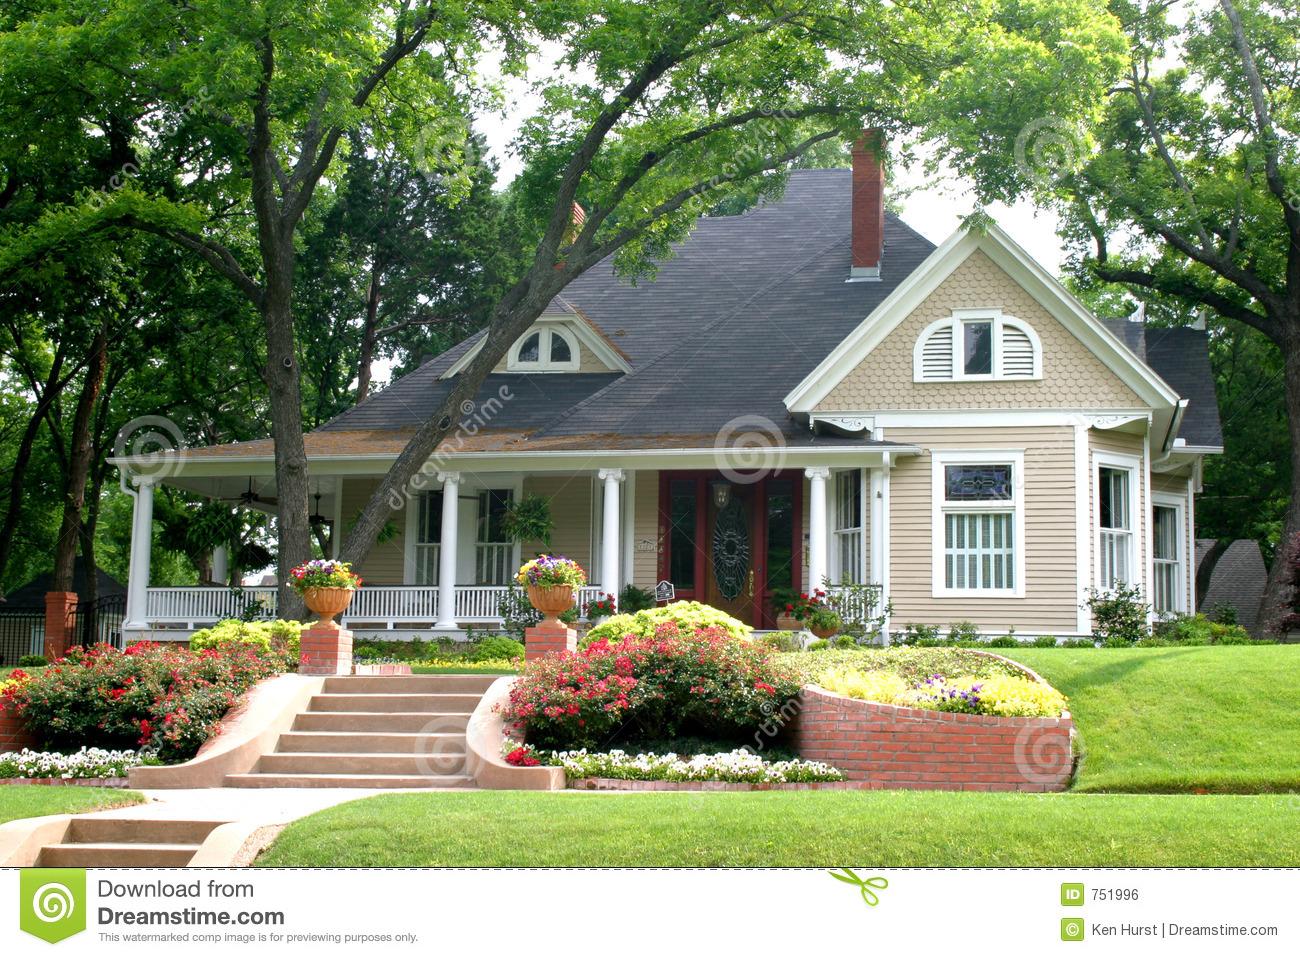 Classic house with flower garden royalty free stock image for Classic house with flower garden